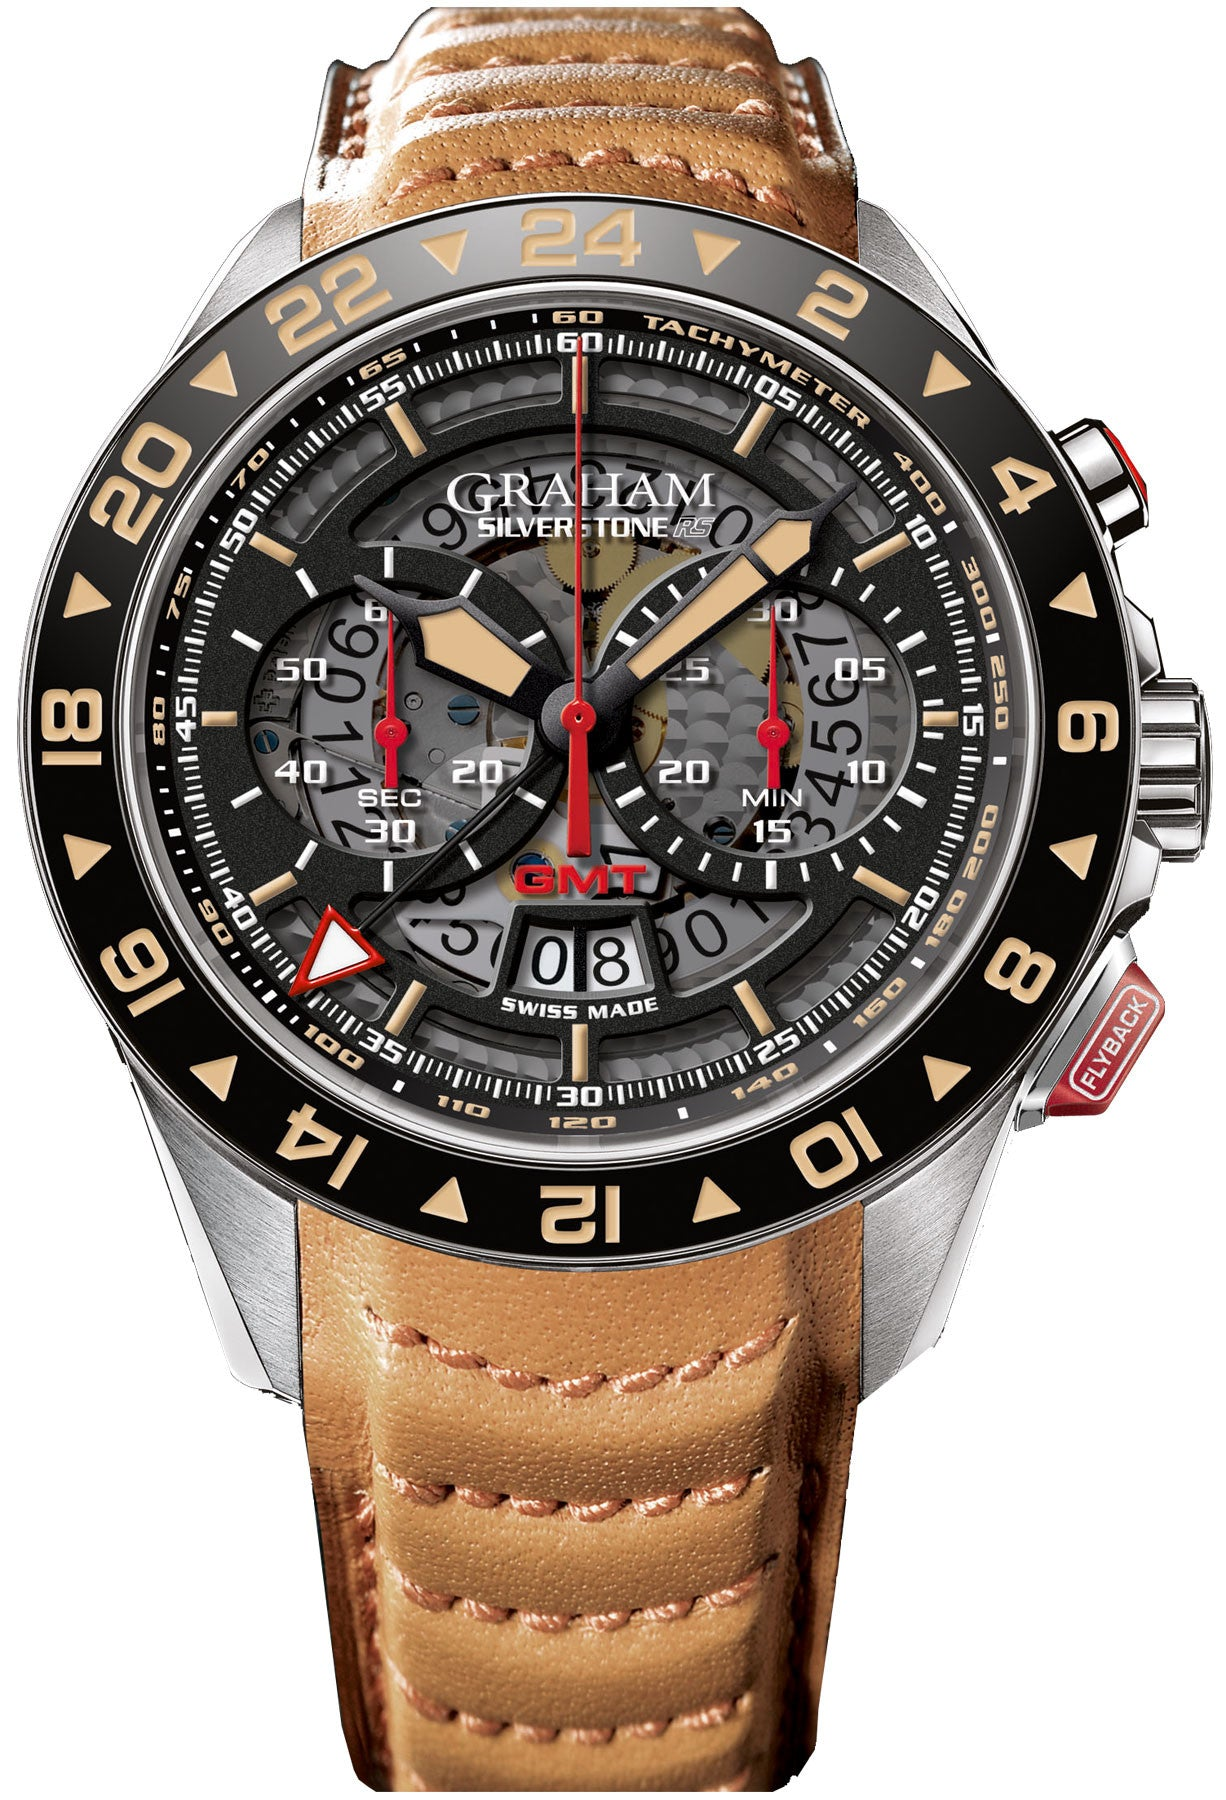 Limited Edition Birthday Collection: Graham Watch Silverstone GMT Limited Edition 2STDC.B08A